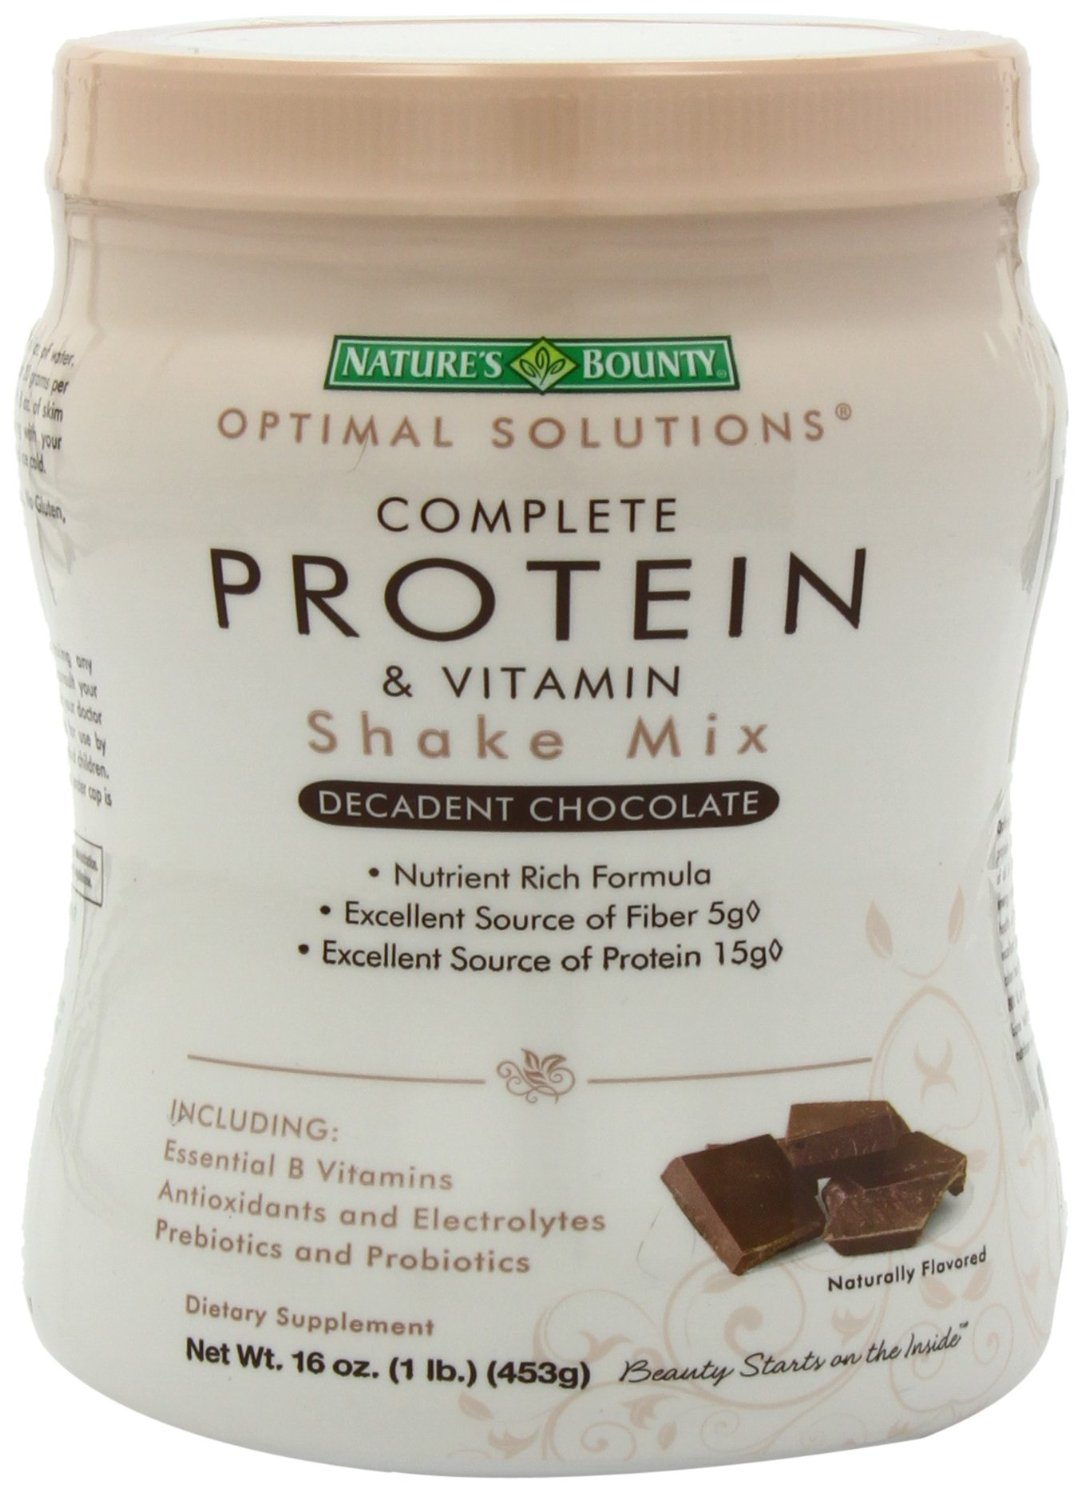 Silver ocean pen review natures bounty protein powder chocolate